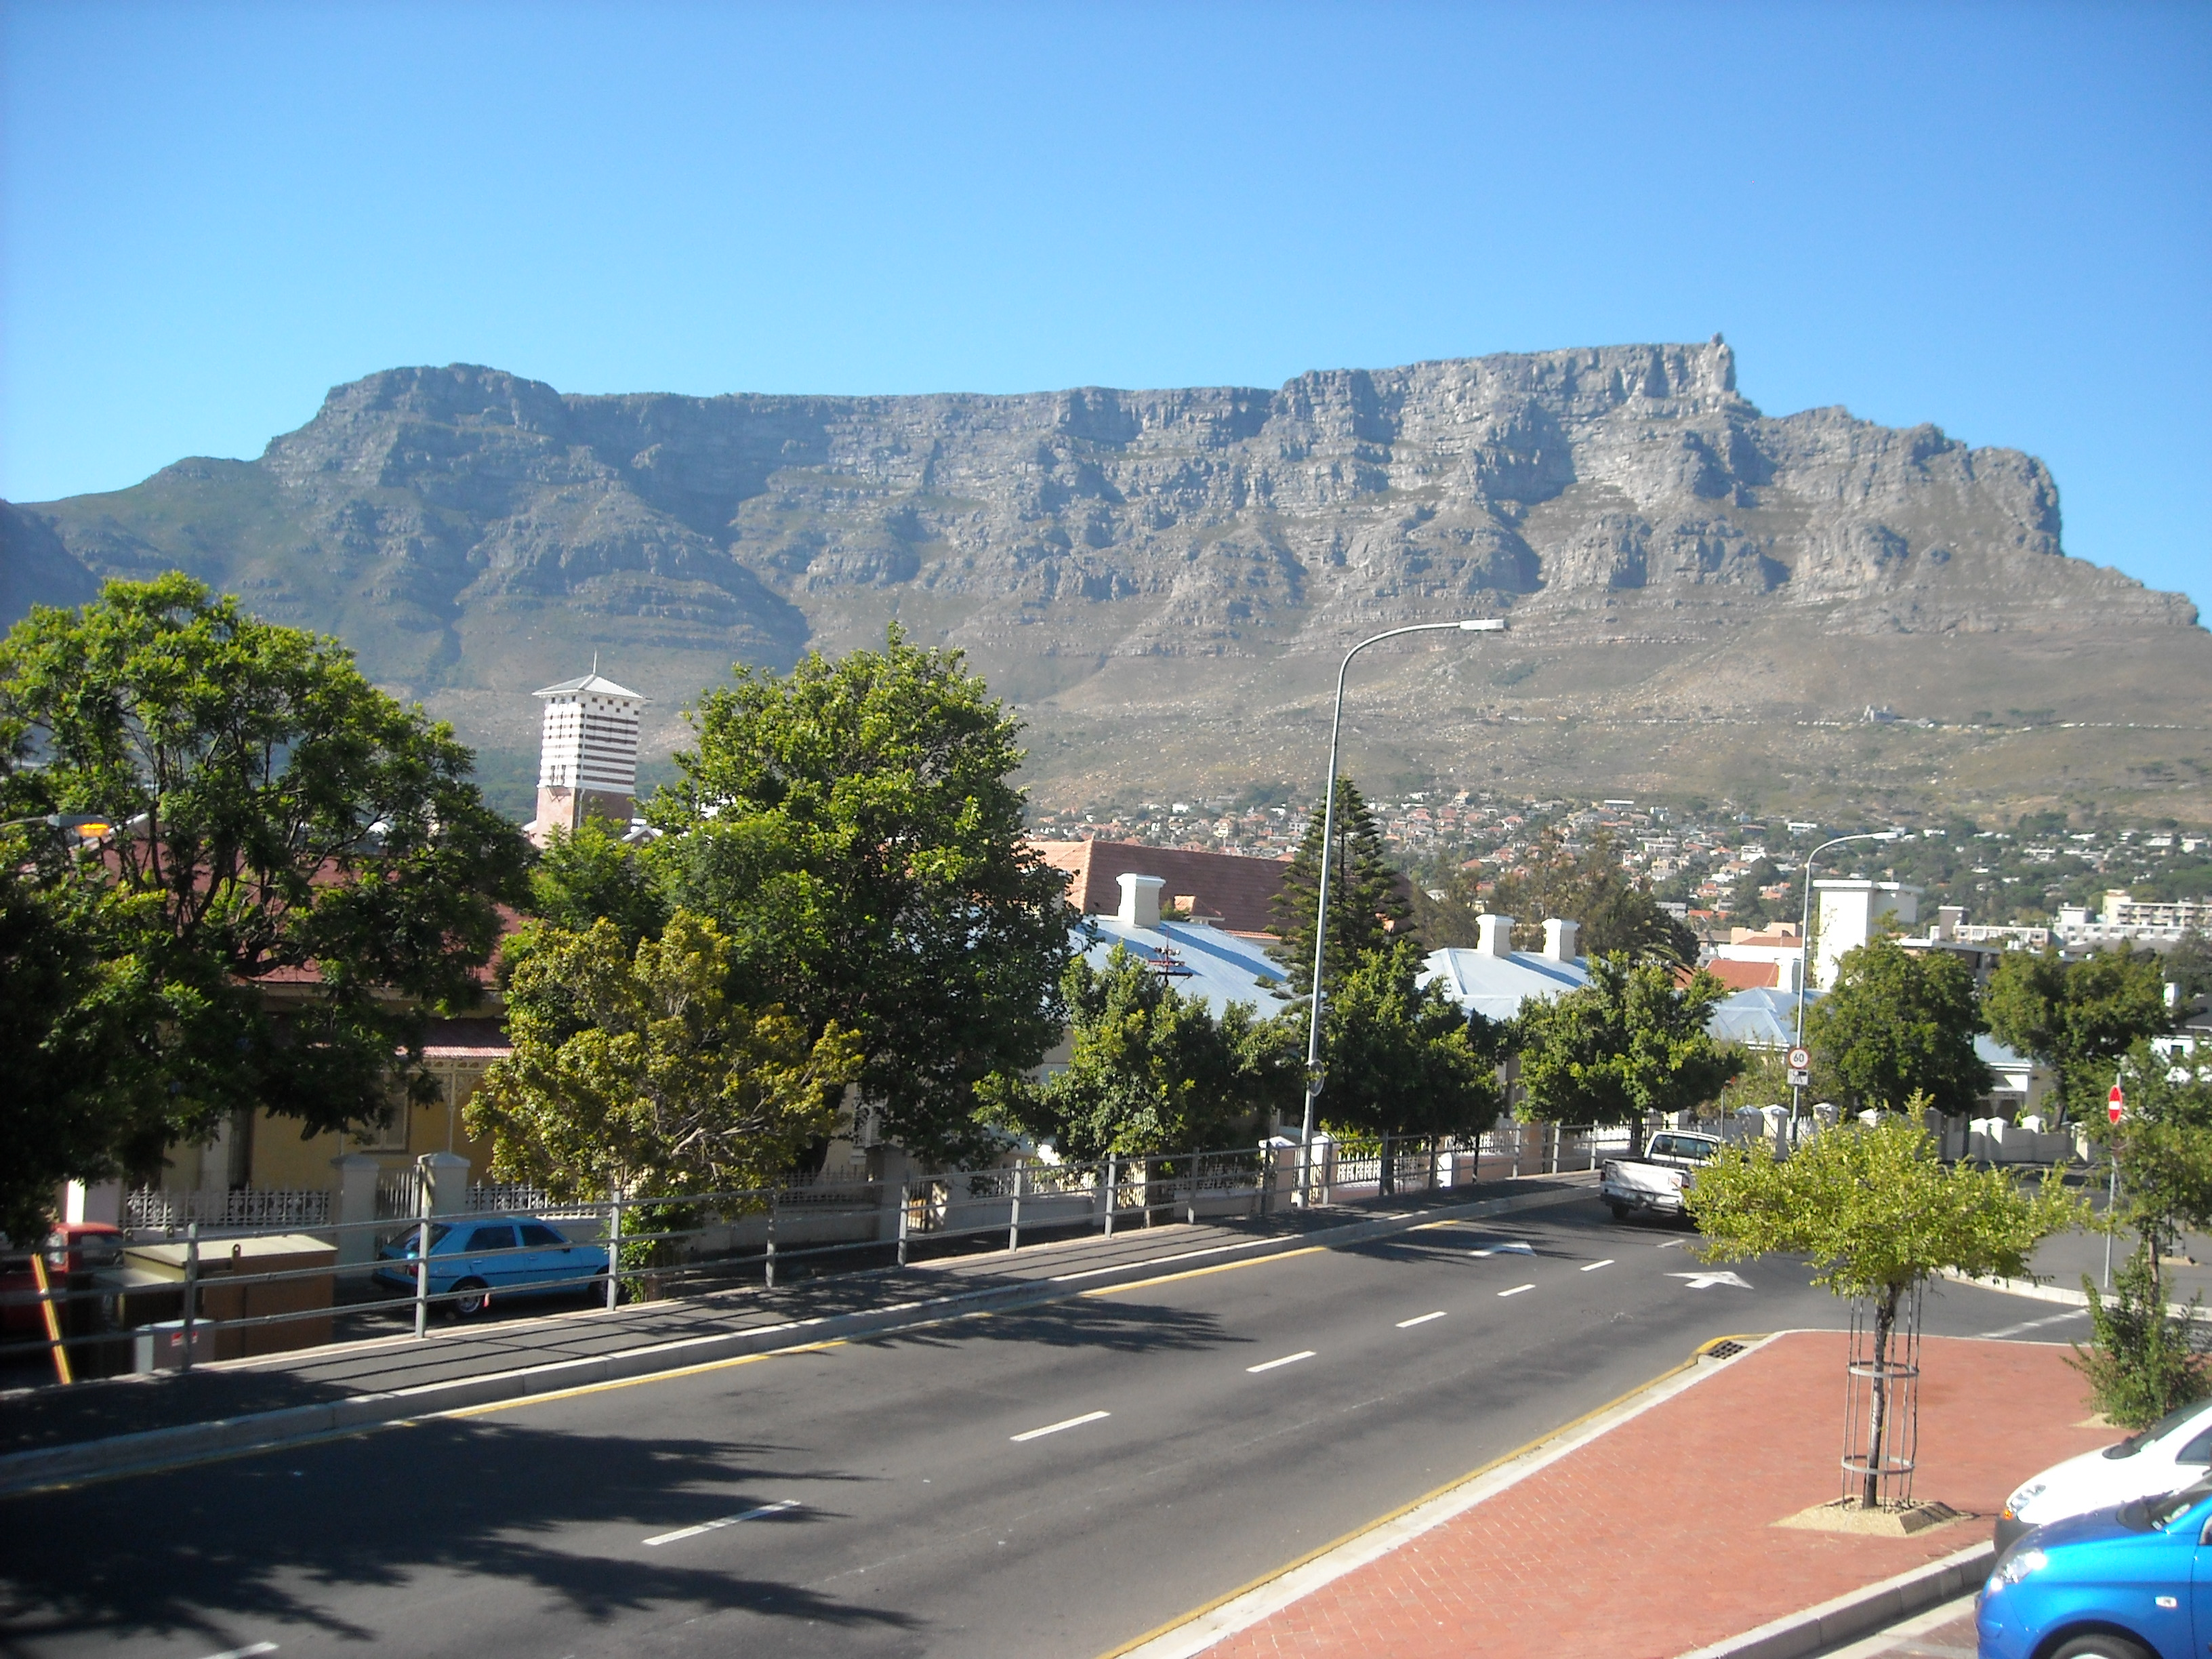 Top 10 Tourist Attractions in South Africa